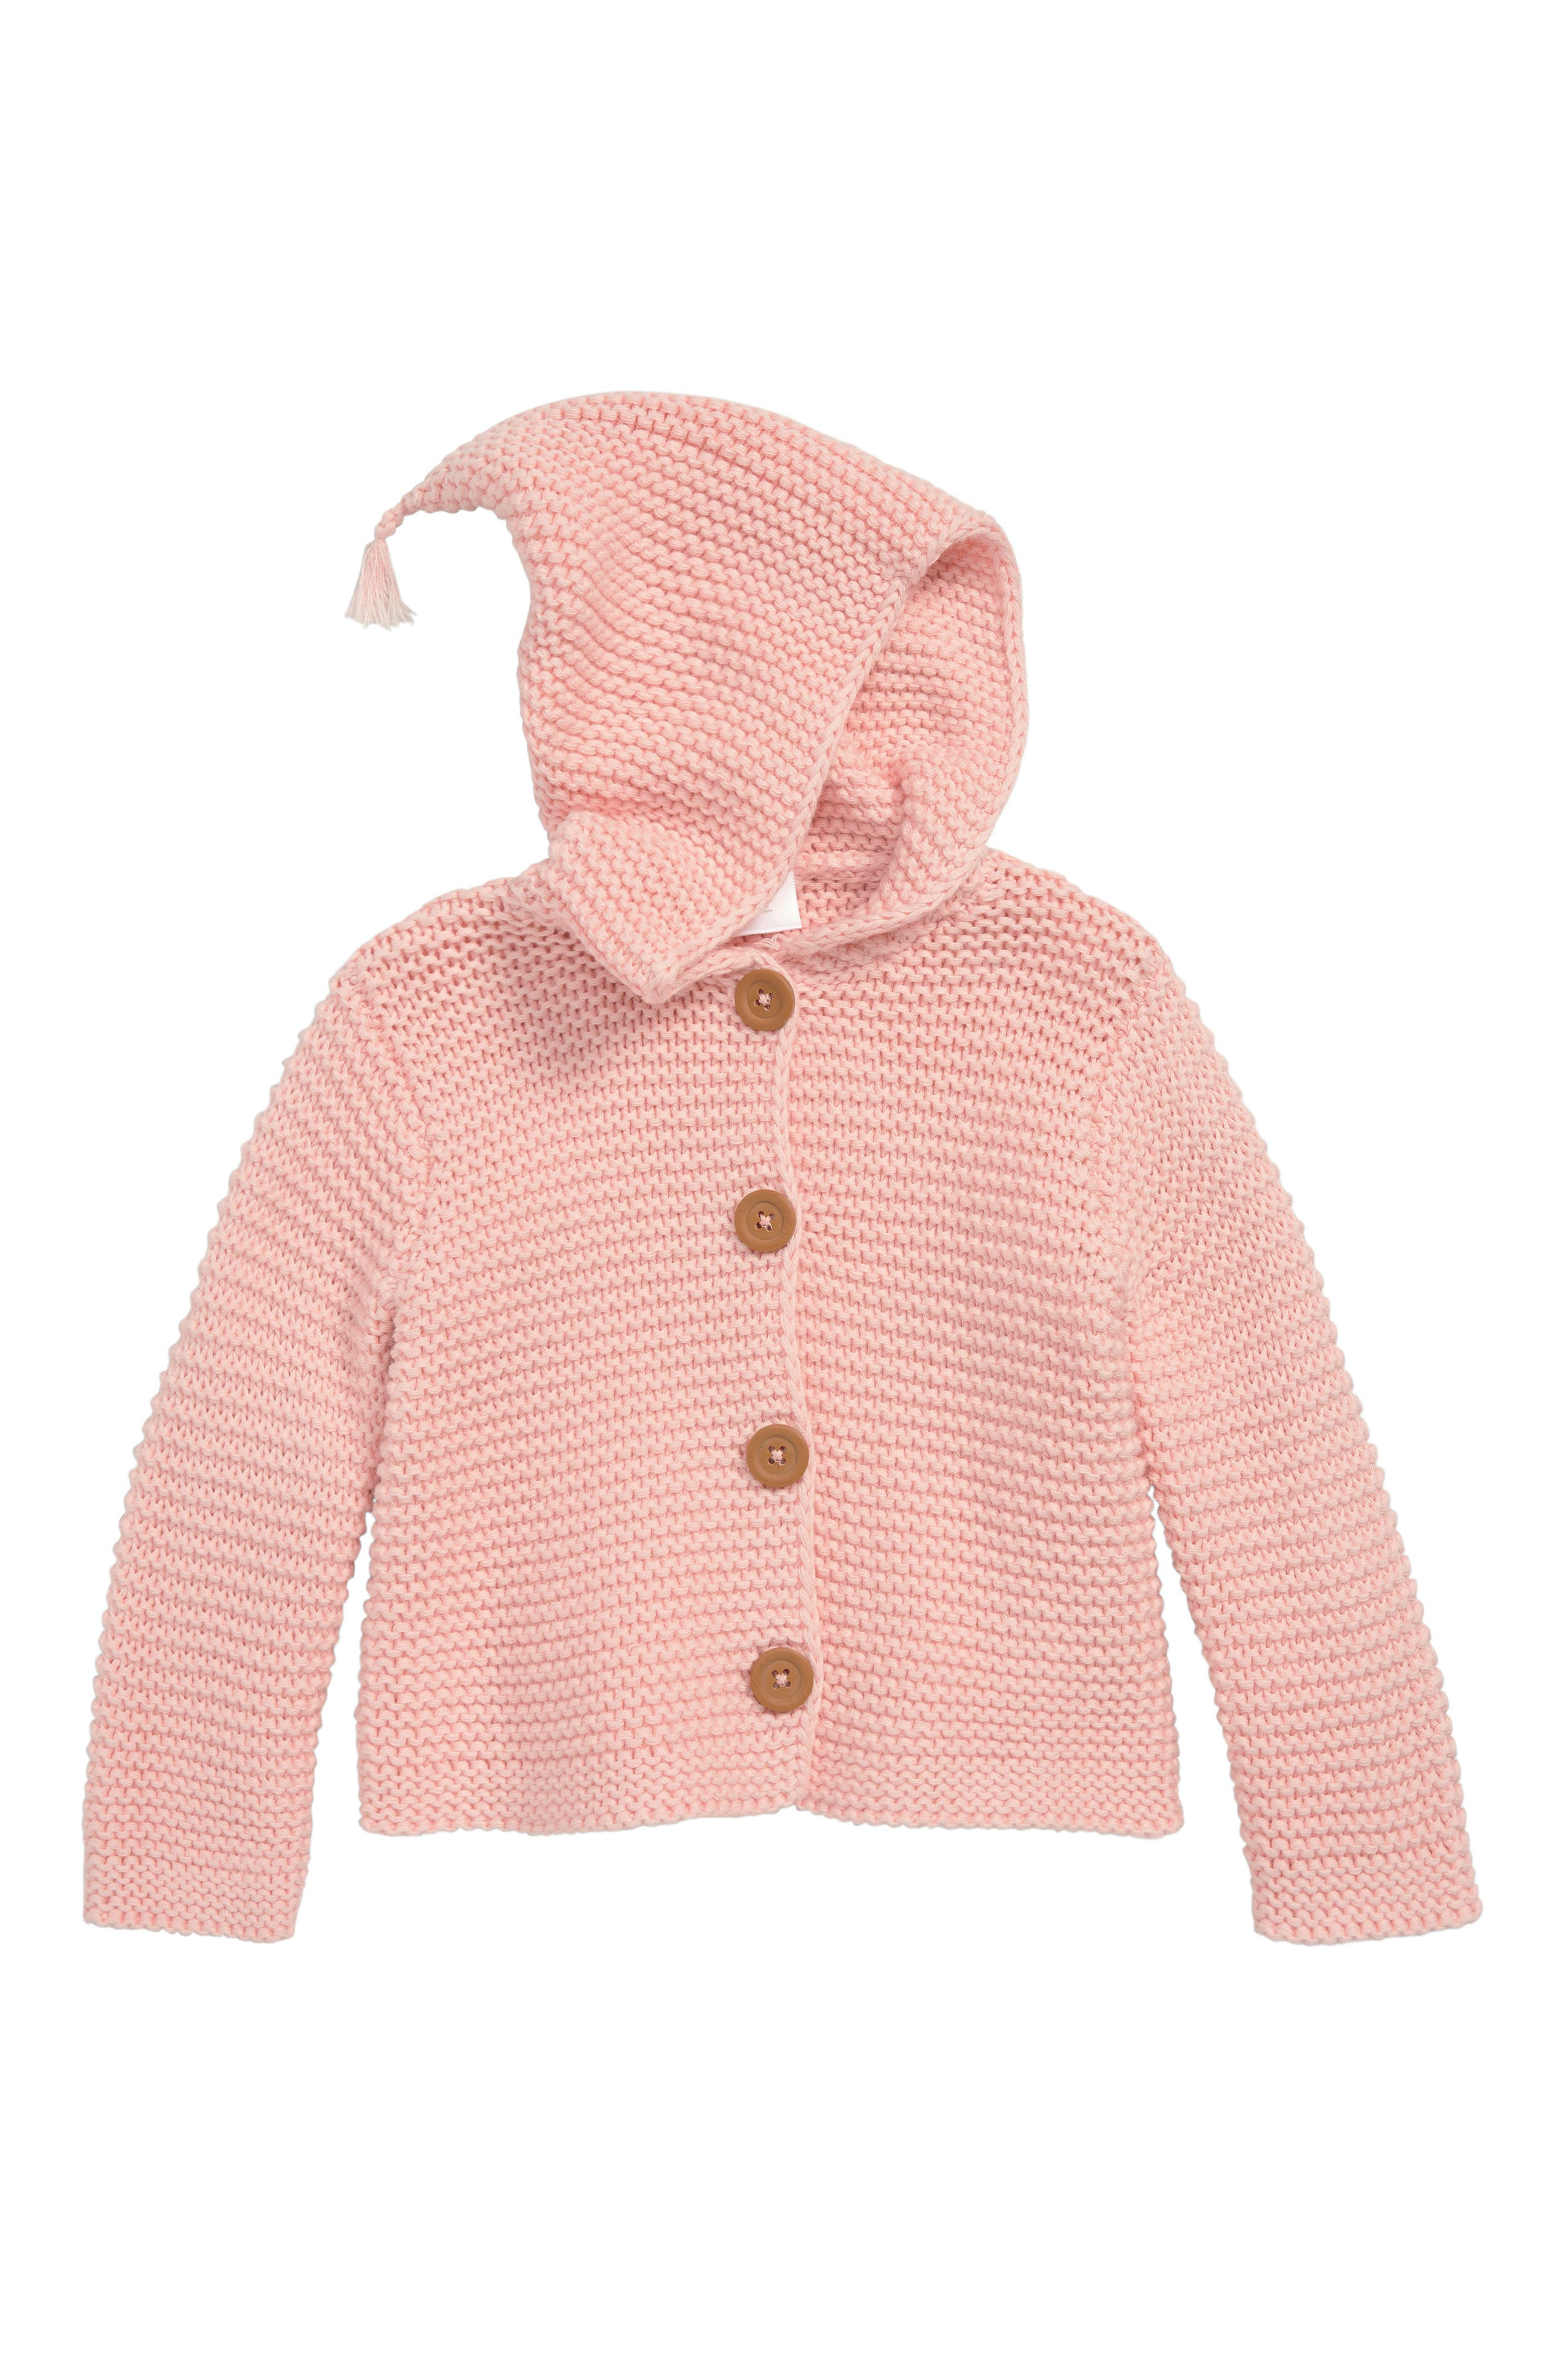 NORDSTROM BABY Lofty Organic Cotton Hooded Cardigan, Main, color, PINK SEASHELL